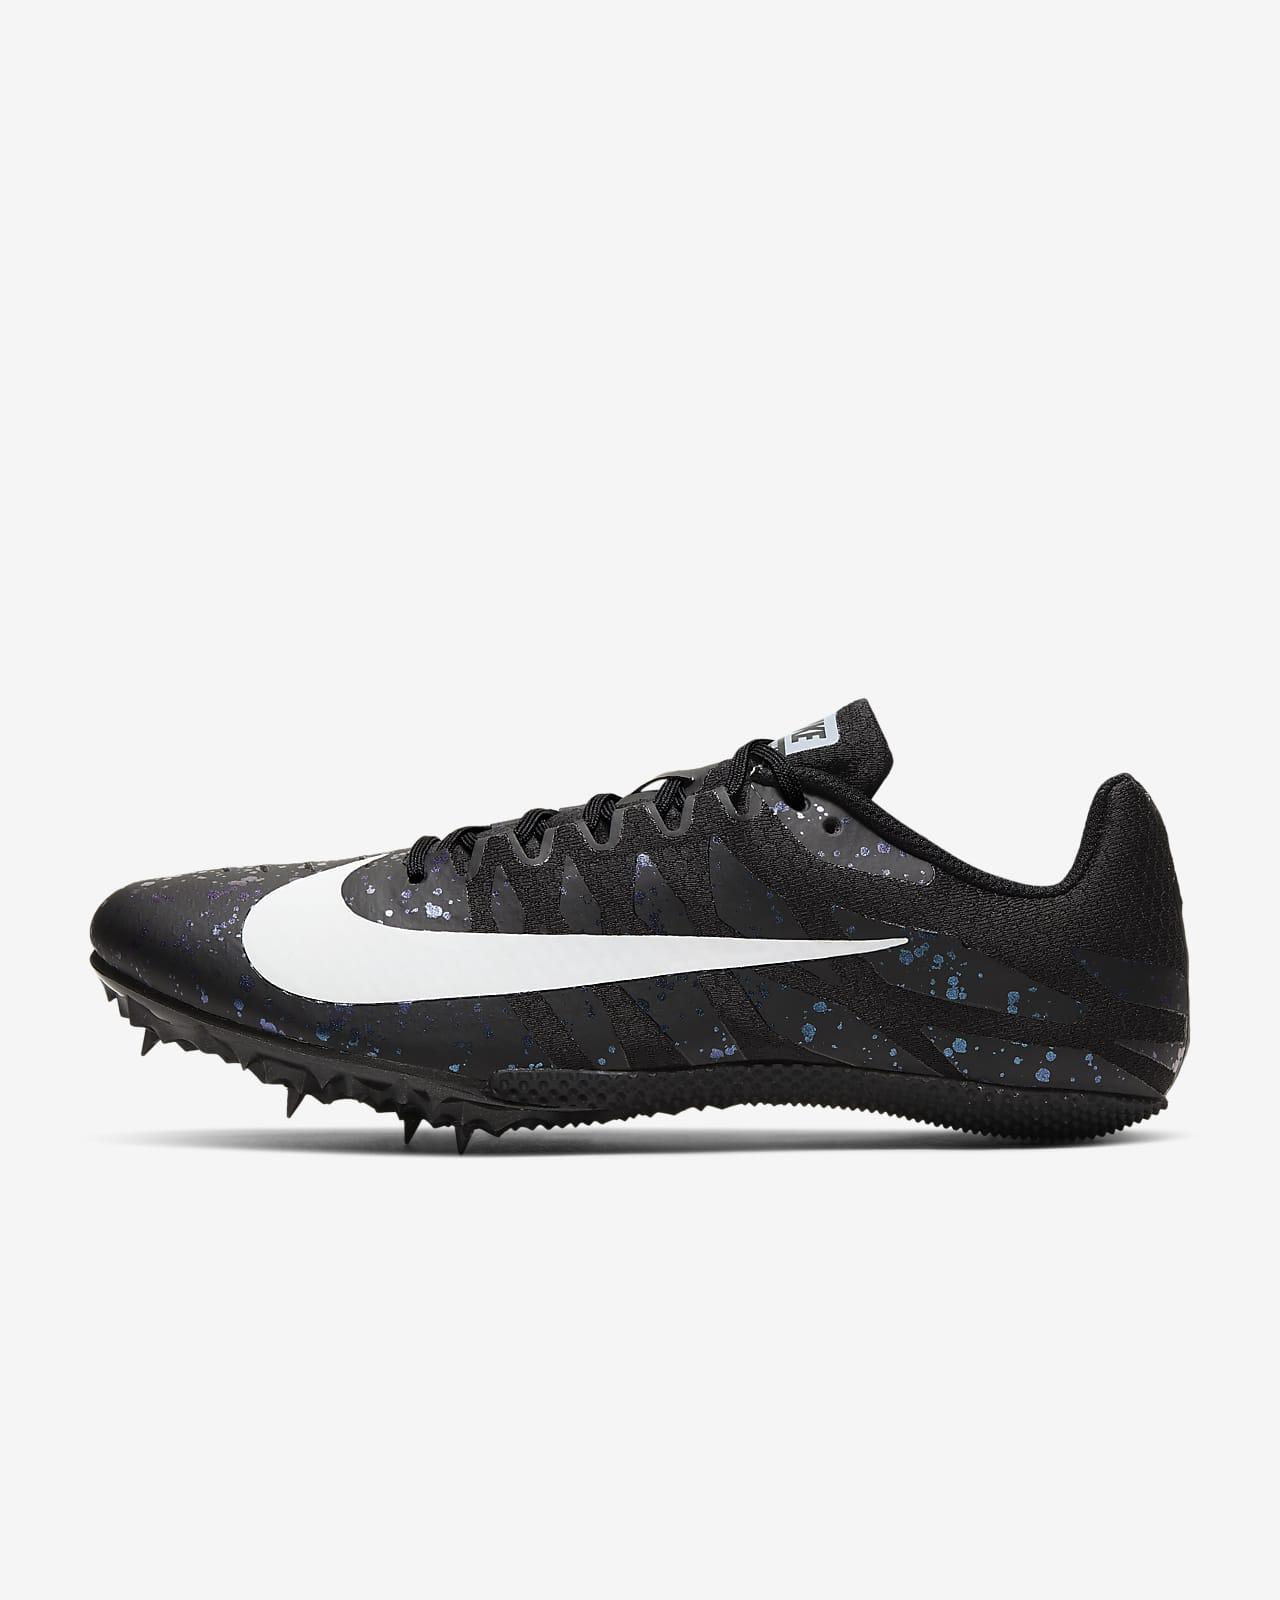 Nike Zoom Rival S 9 Track & Field Sprinting Spikes